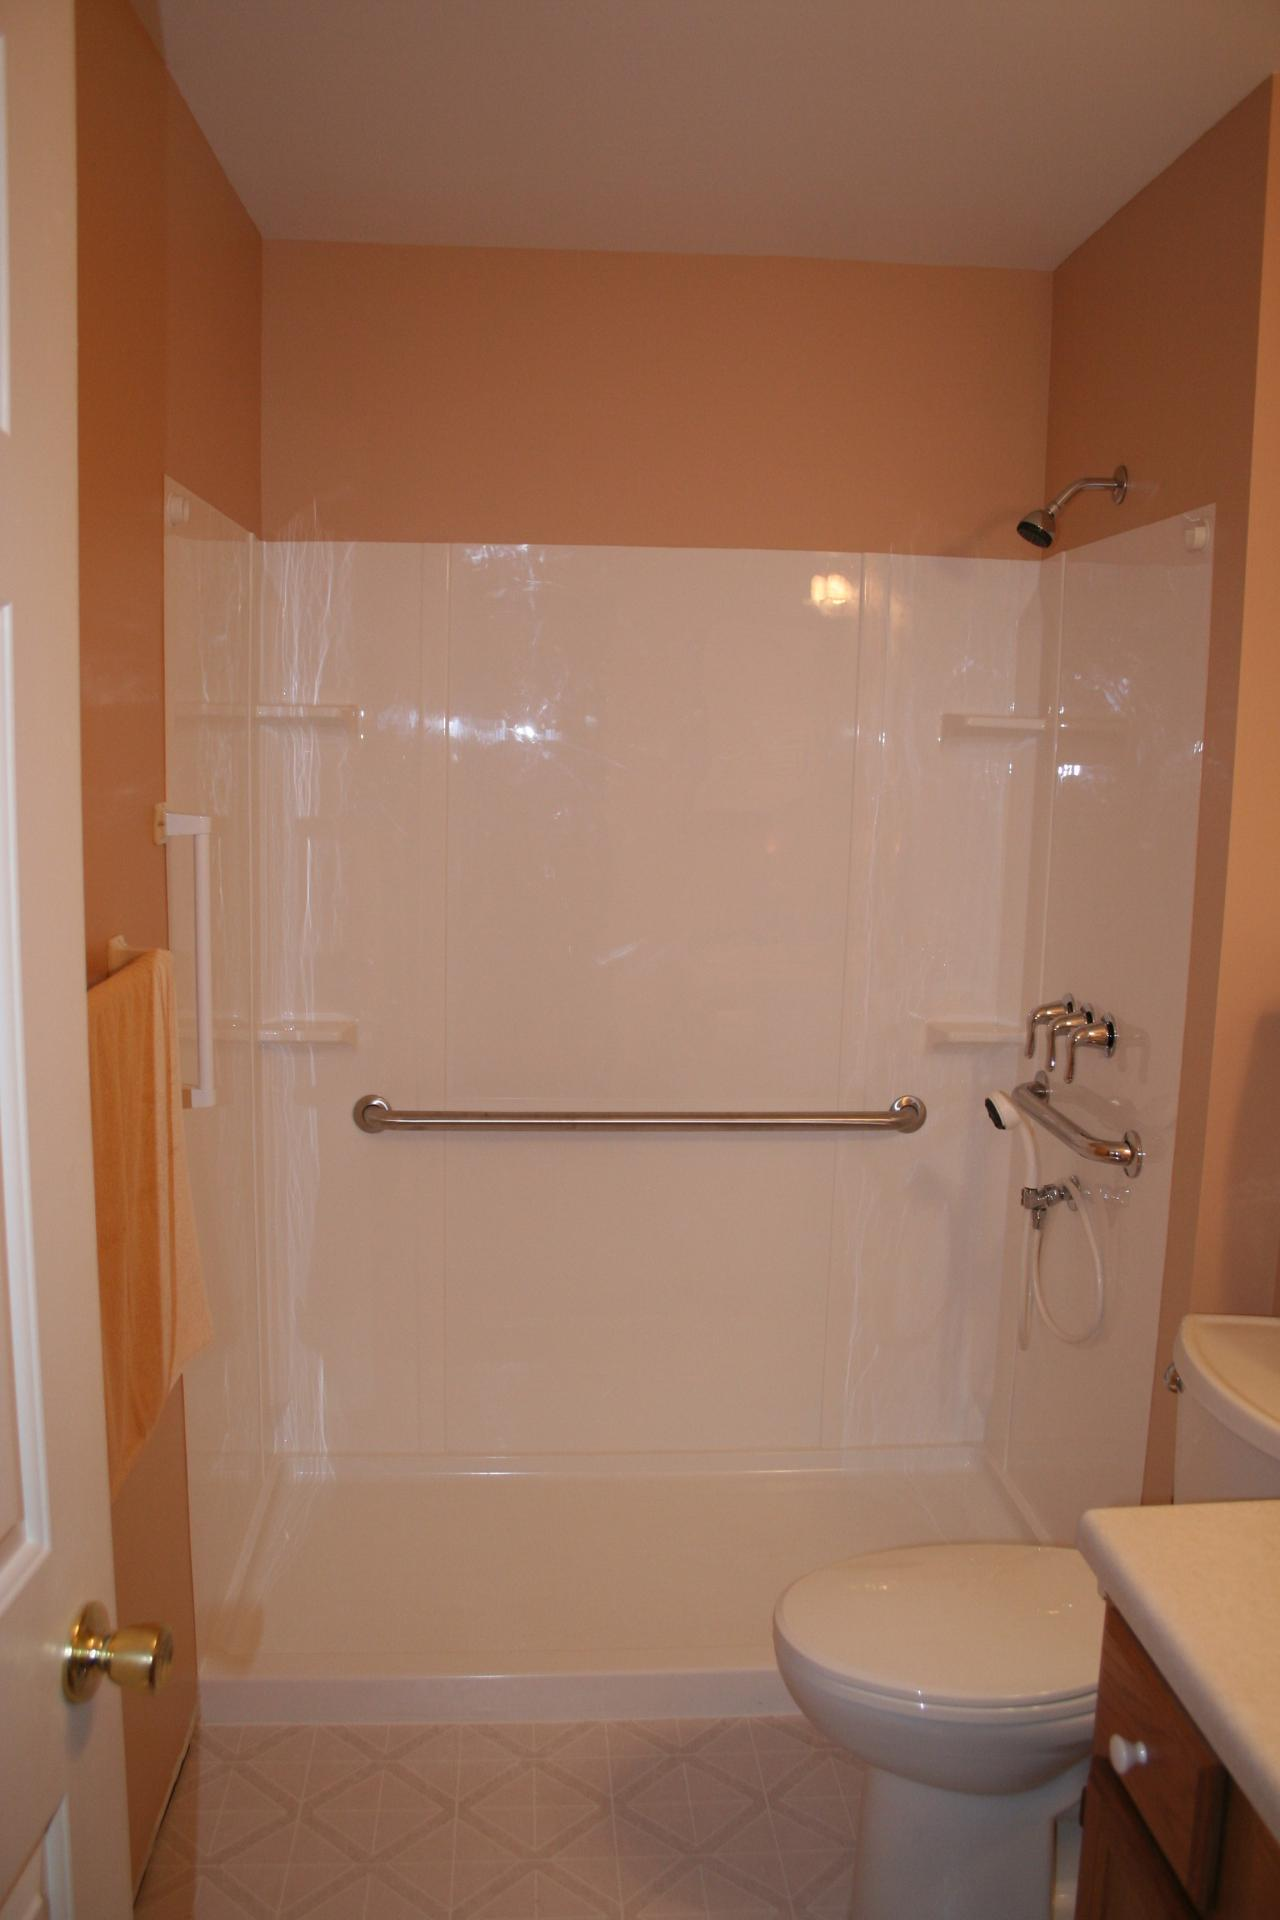 Nest Homes Construction Handicap Shower